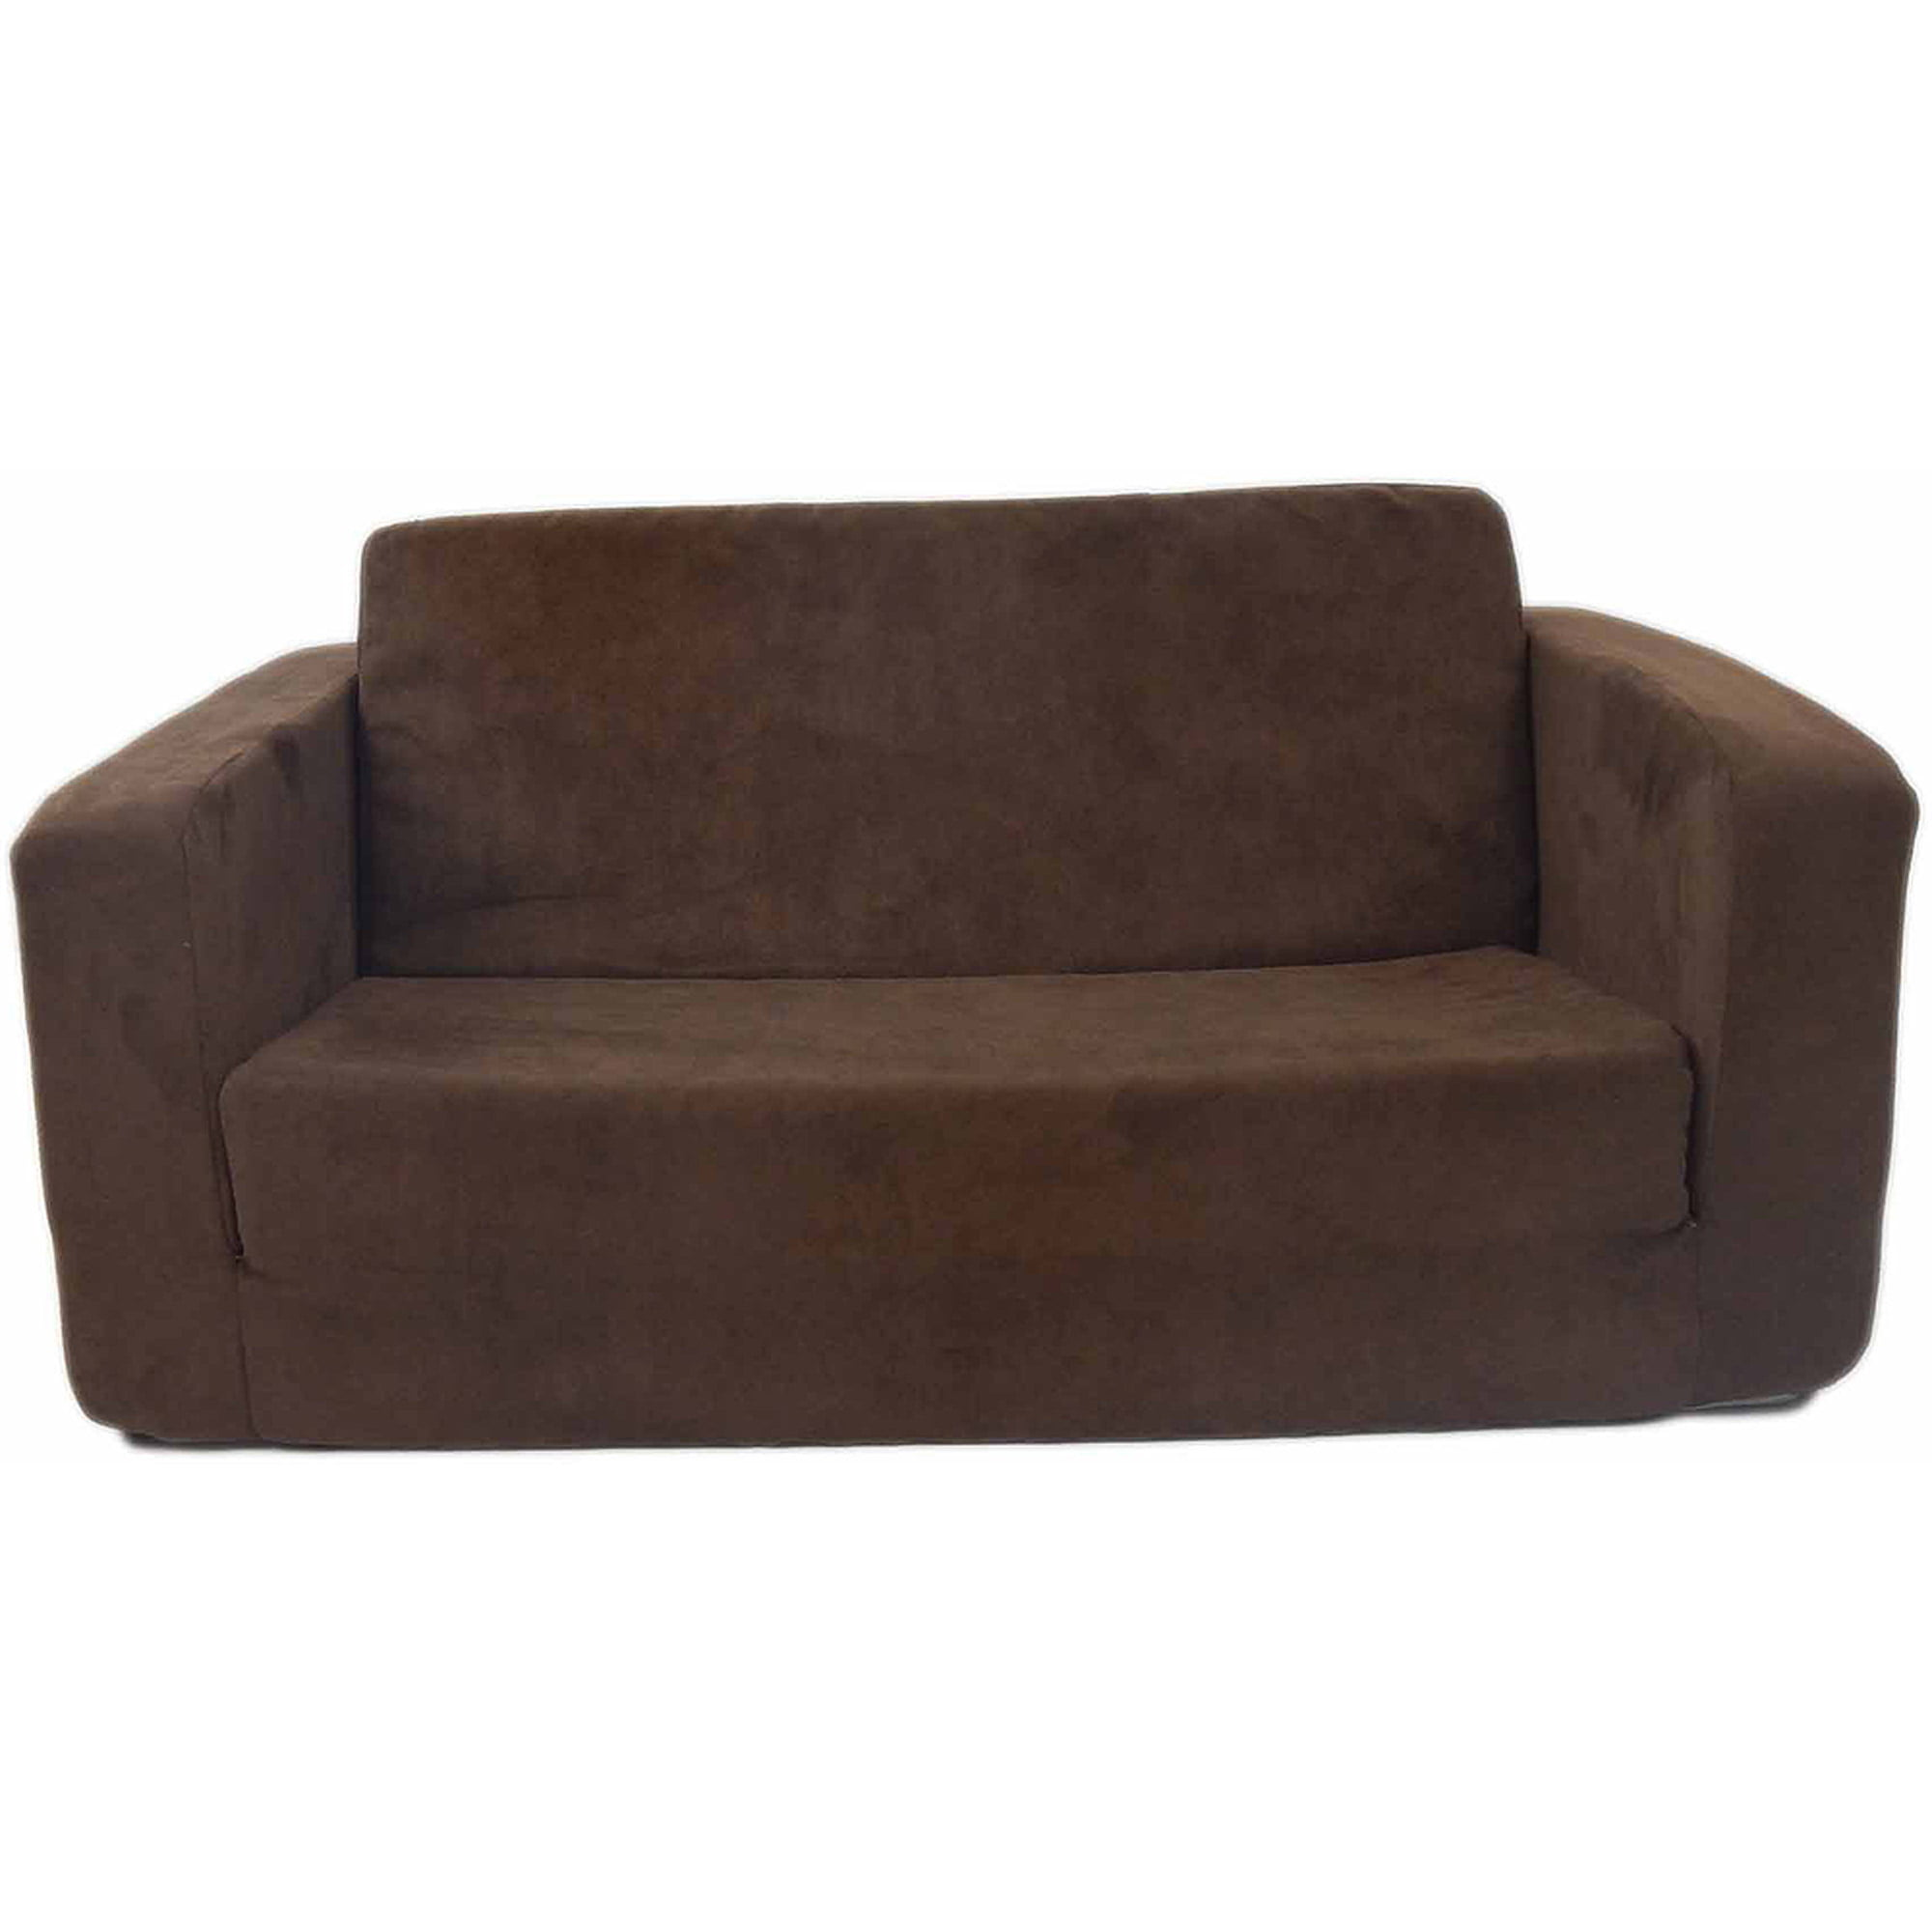 Flip Sofas Pikka Gray Flip Flop Sofa Bed Thesofa